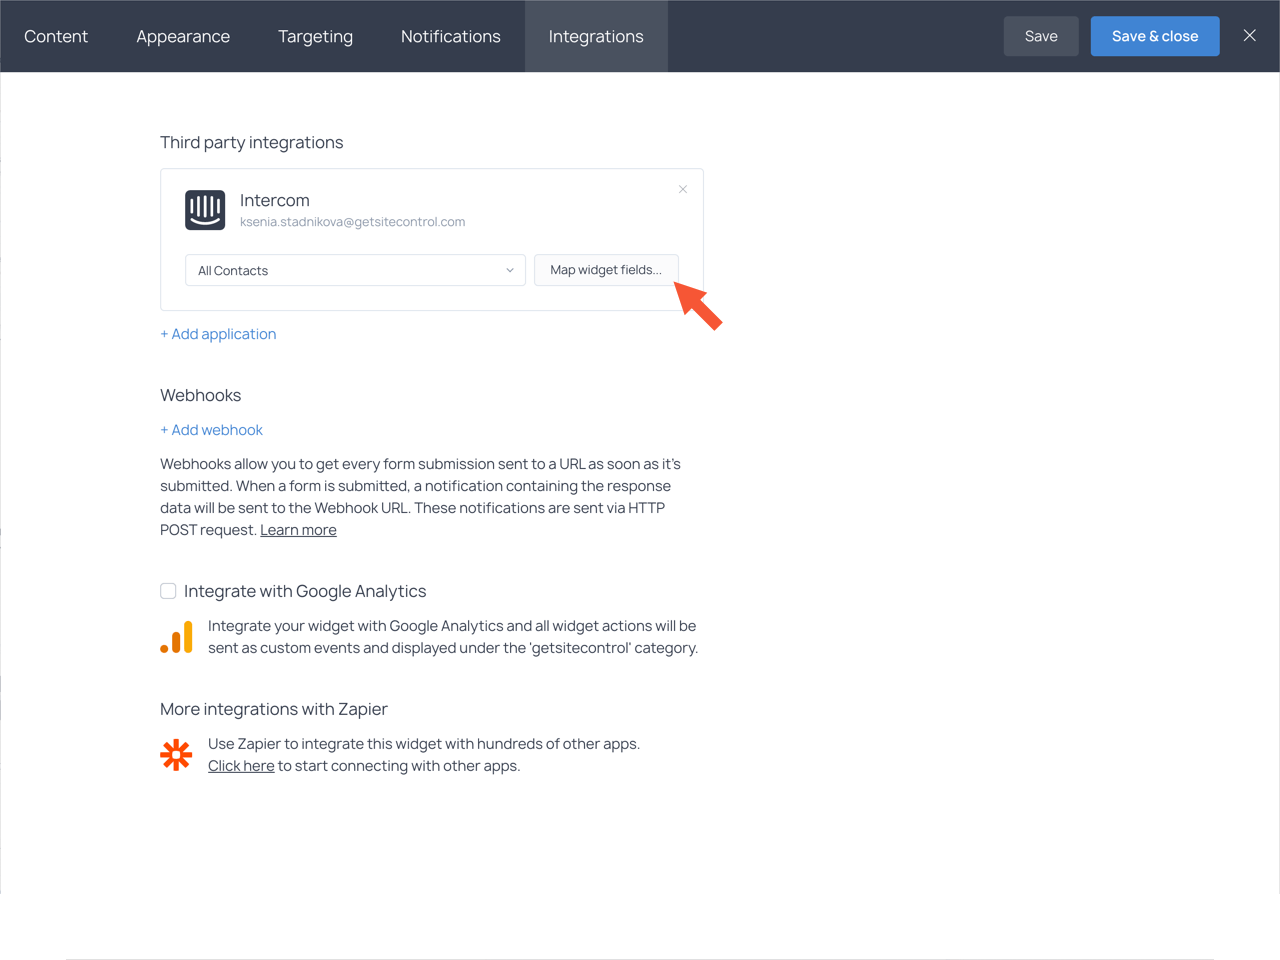 Integrations tab with the highlighted Map widget fields button